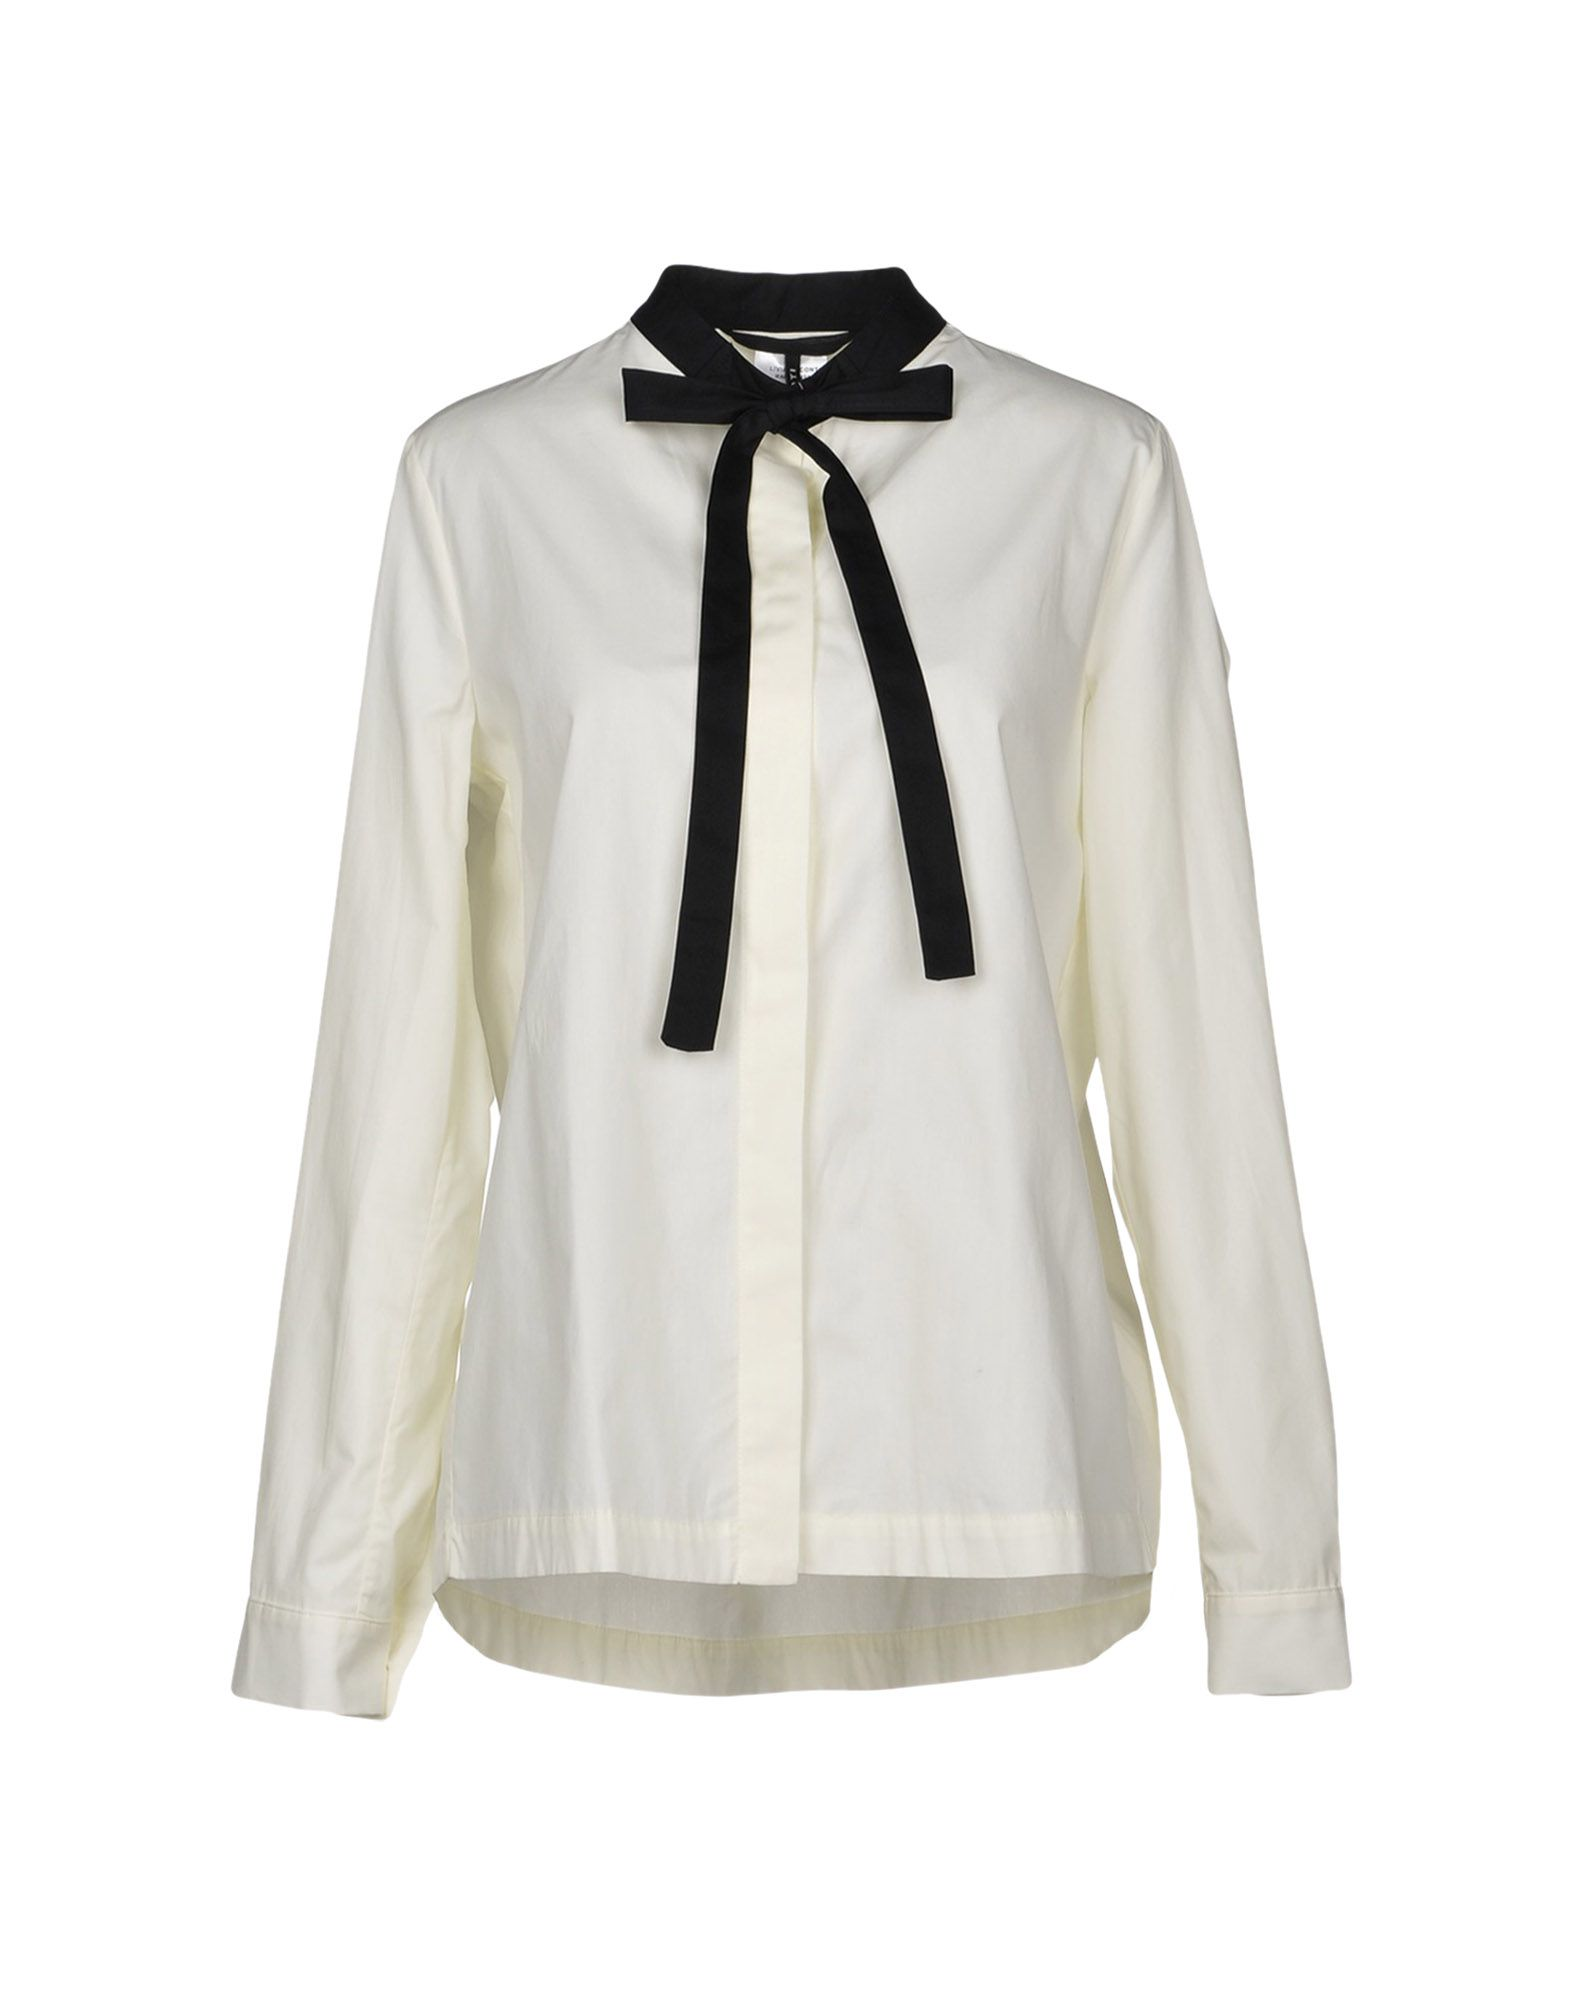 LIVIANA CONTI Shirts & Blouses With Bow in White